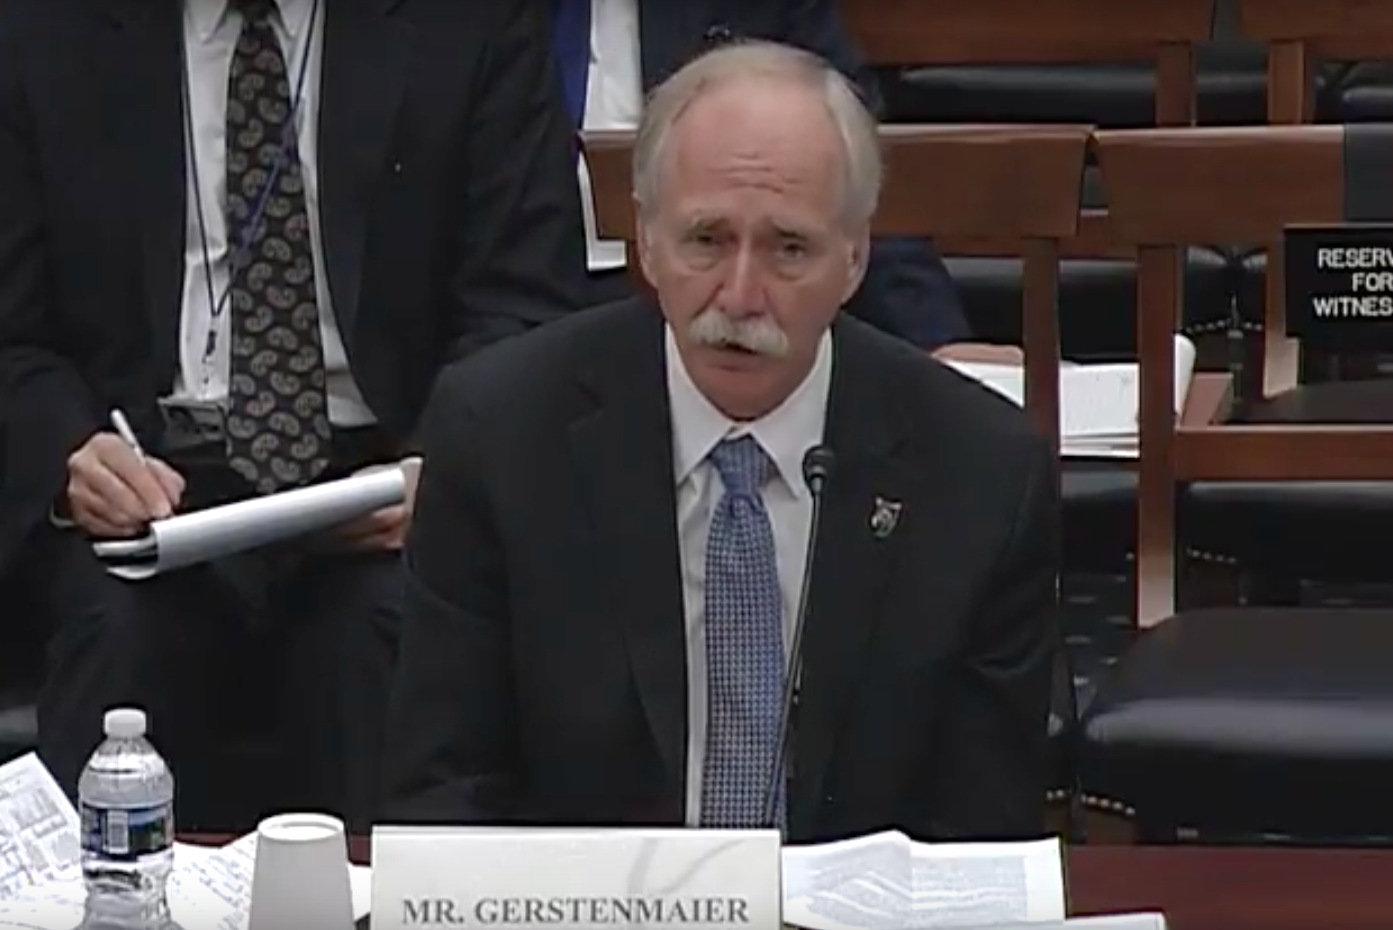 Associate Administrator for Human Exploration and Operations, National Aeronautics and Space Administration William H. Gerstenmaier /Photo: House Science, Space and Technology Committee/YouTube